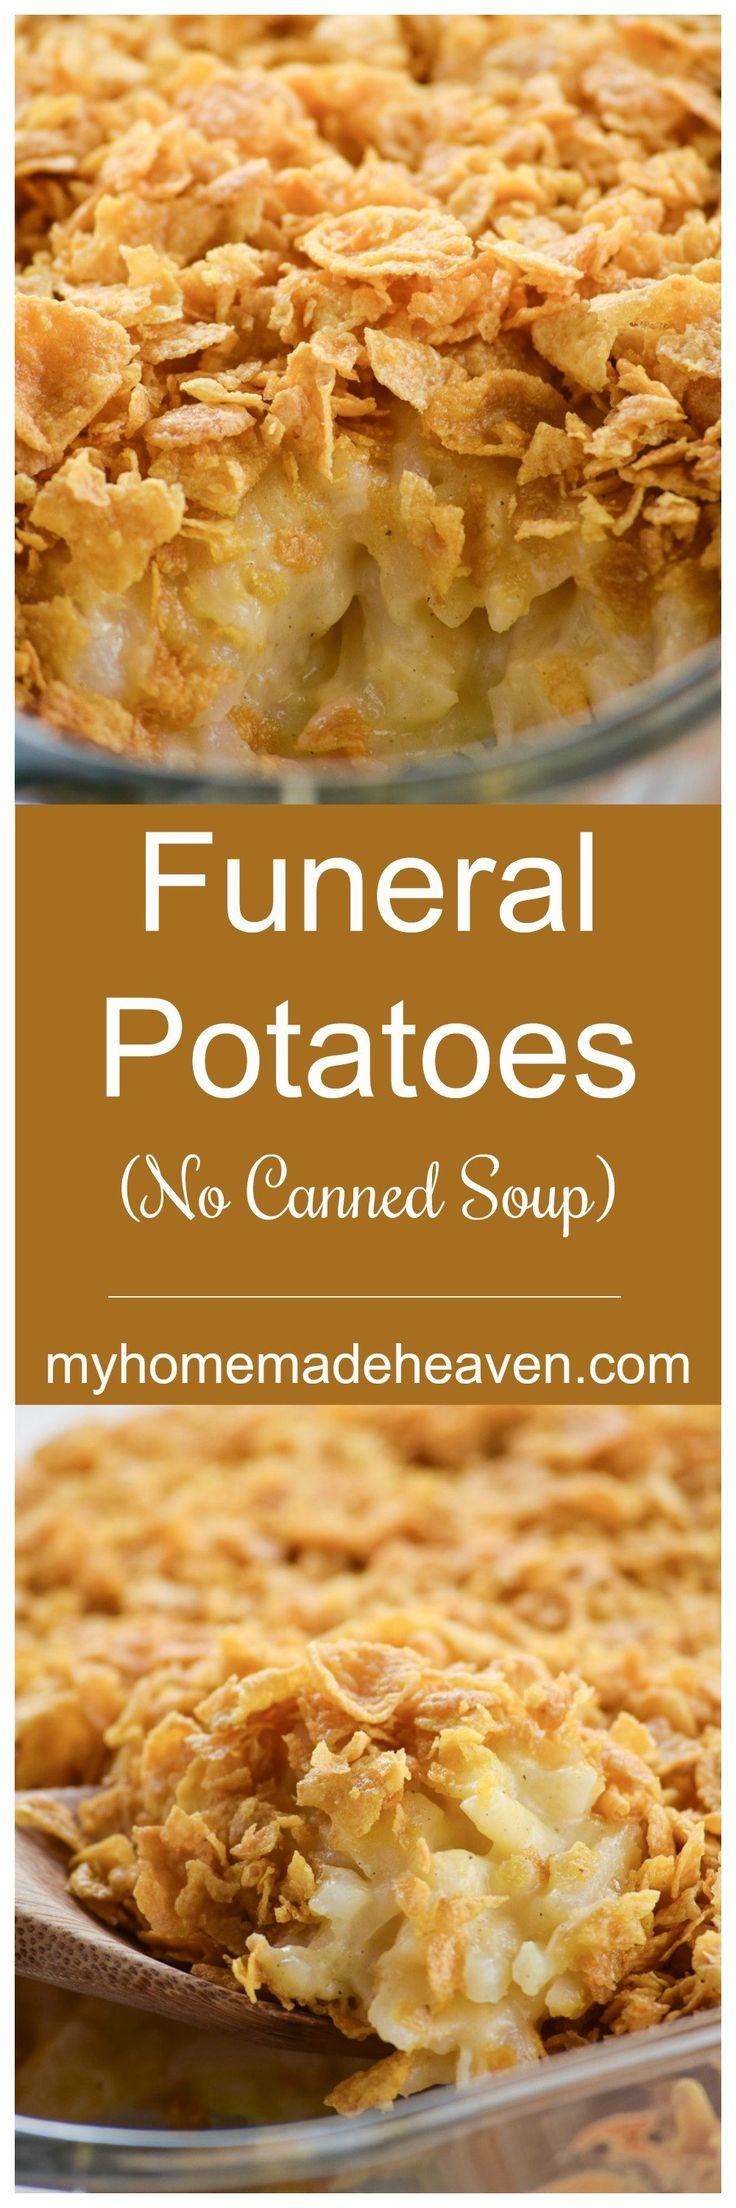 Love these potatoes! And no canned soup! Perfect!